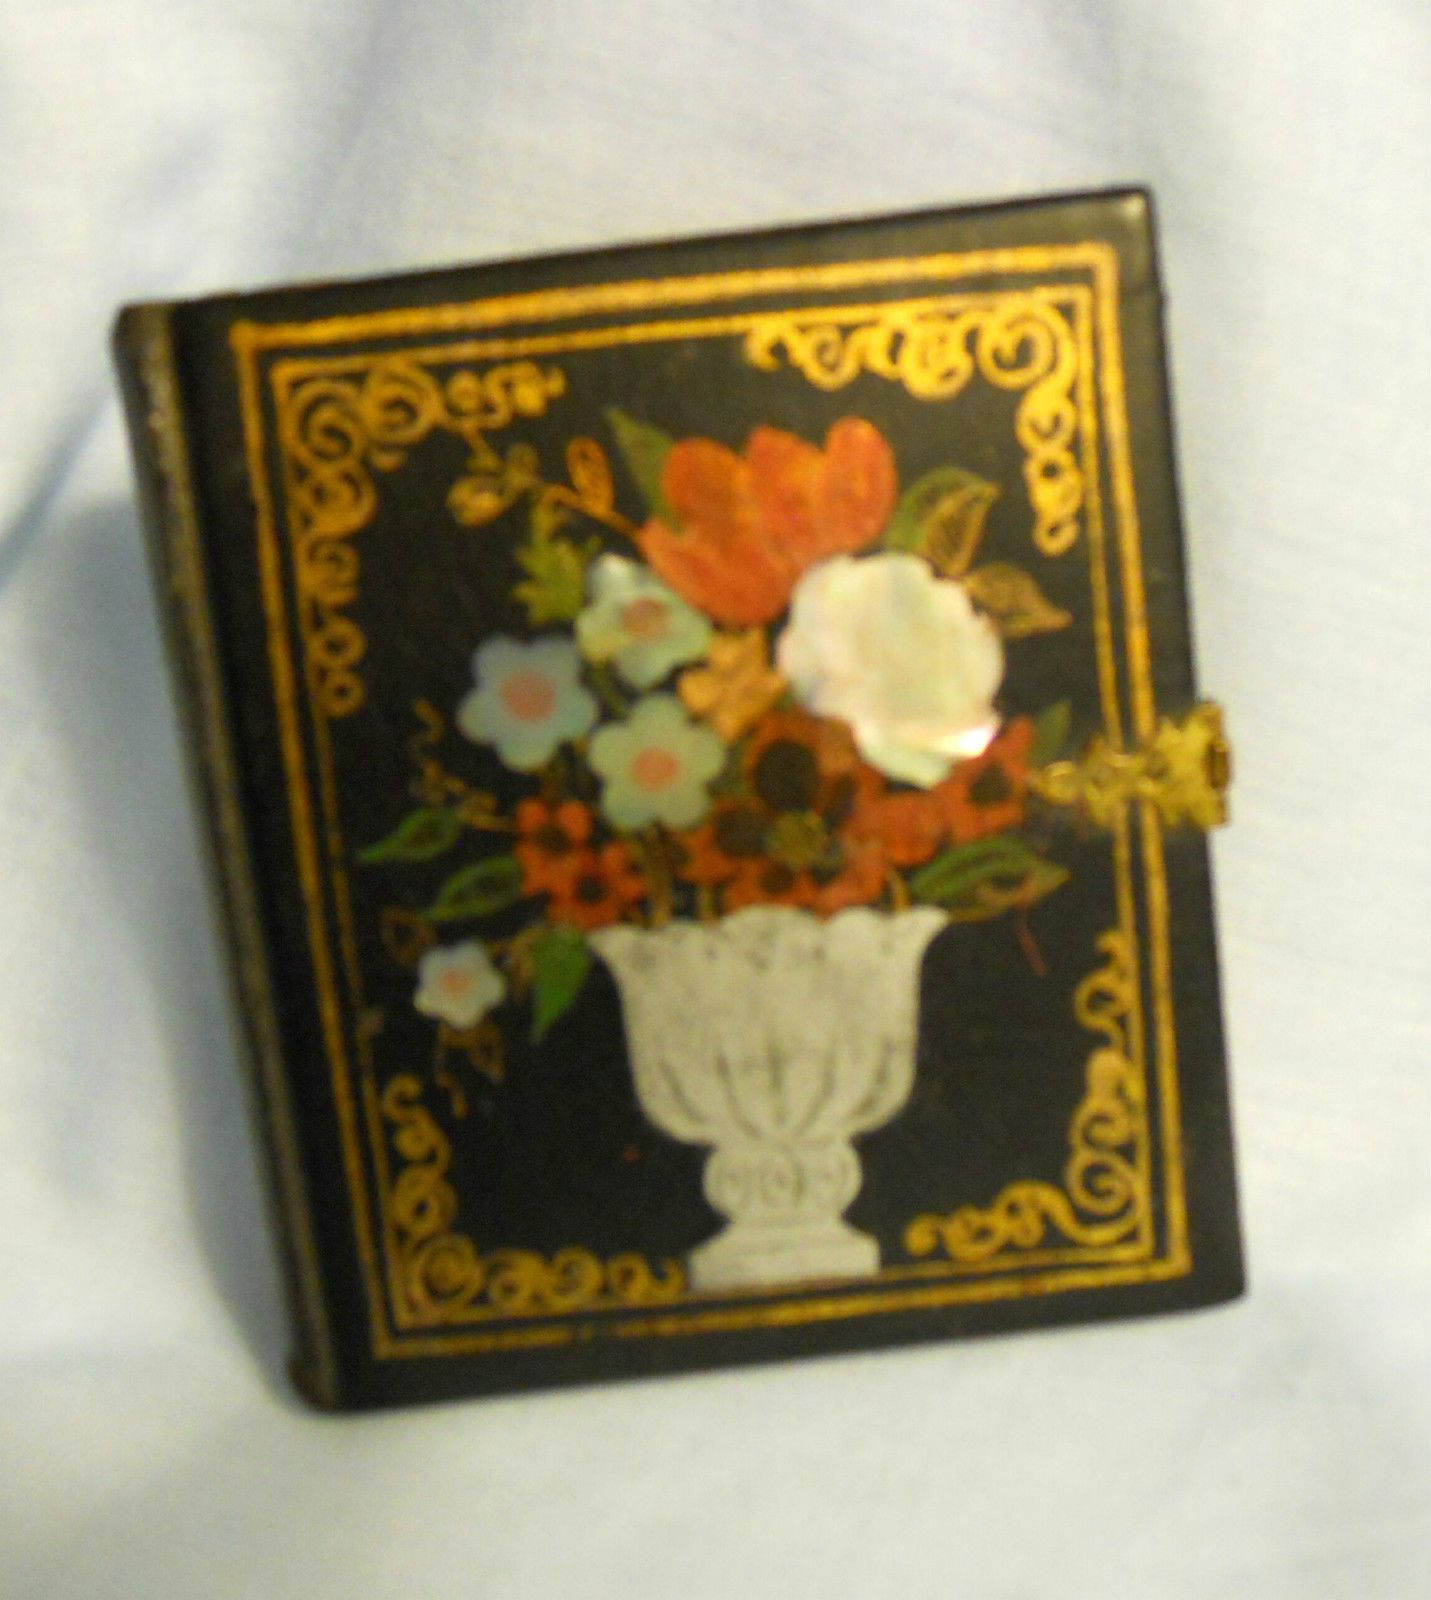 1850s PHOTO CASE INLAID with ABELONE, VASE with FLOWERS with TINTYPE OF GIRL | eBay